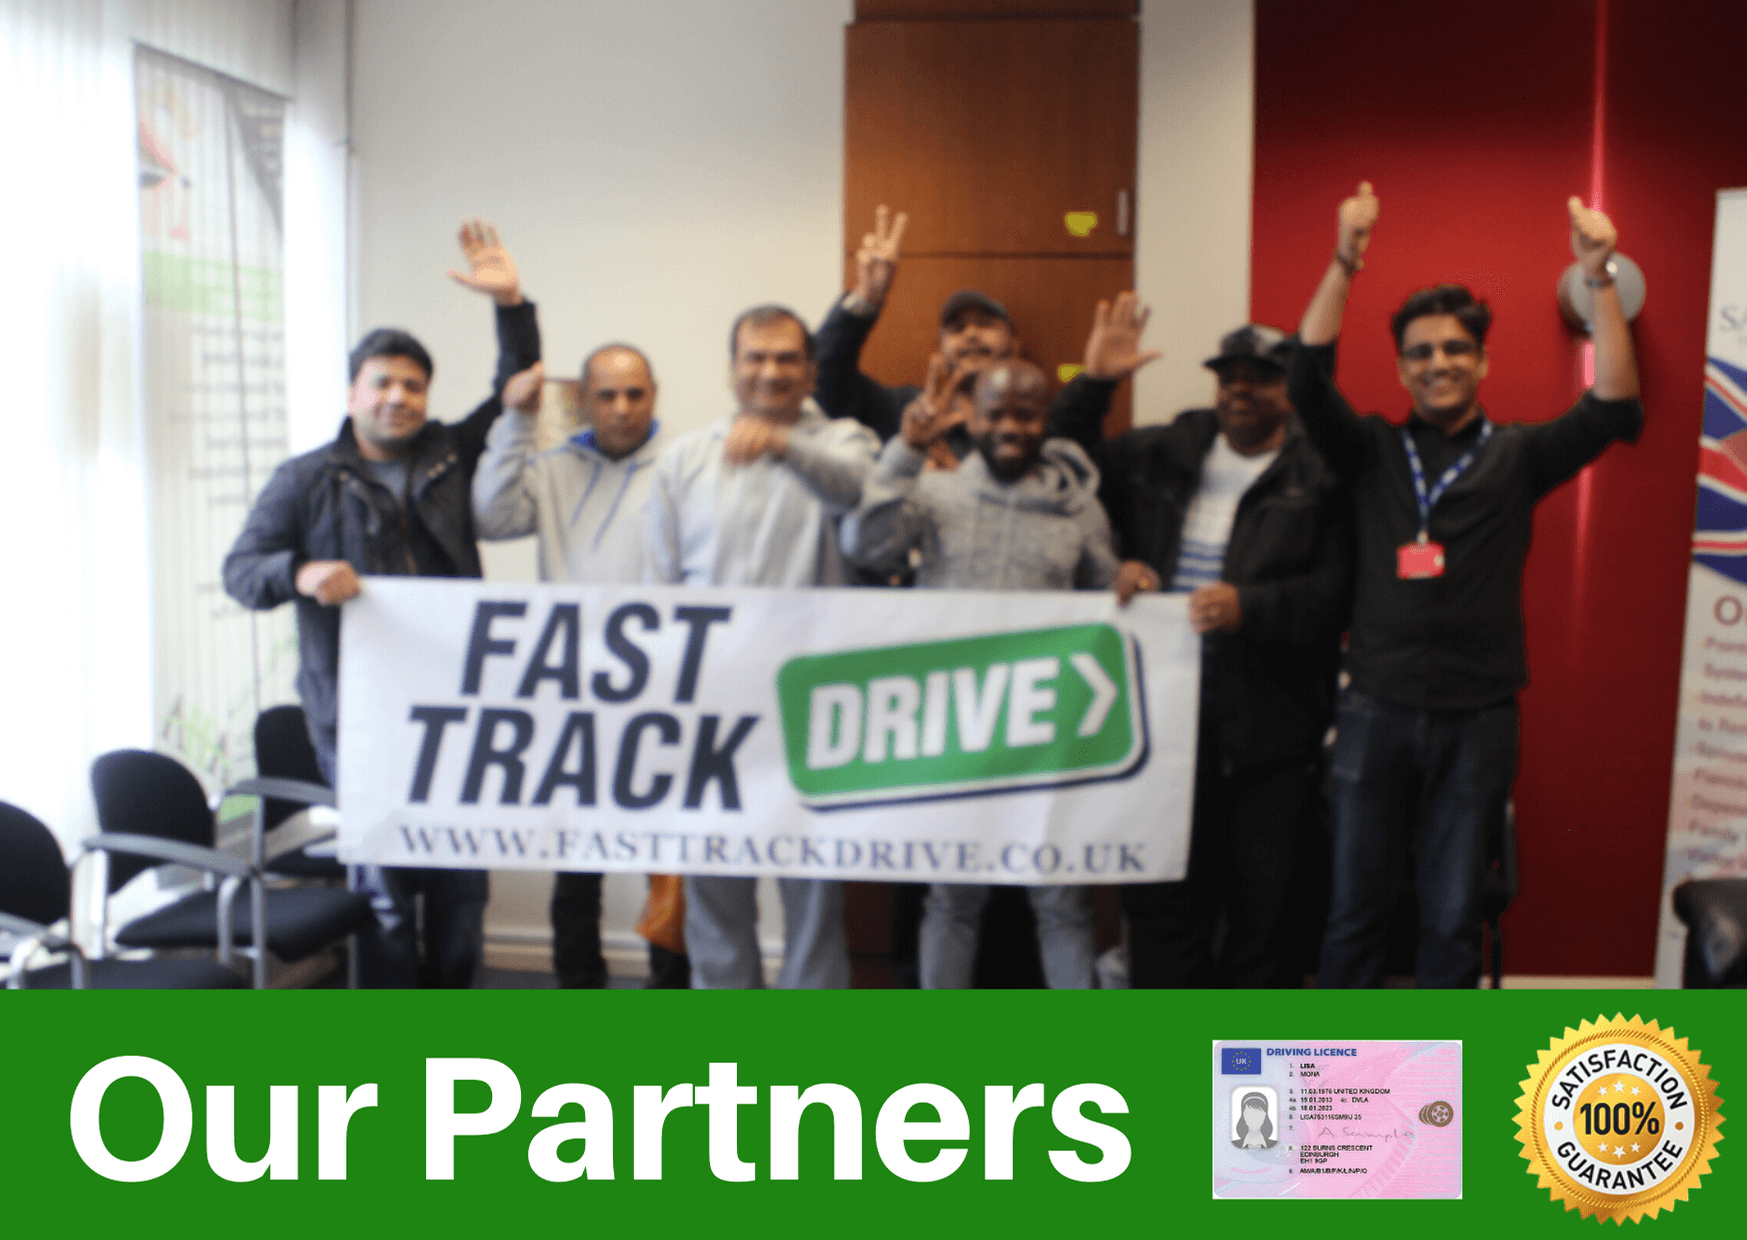 We have driving theory test training with our partners fast track drive